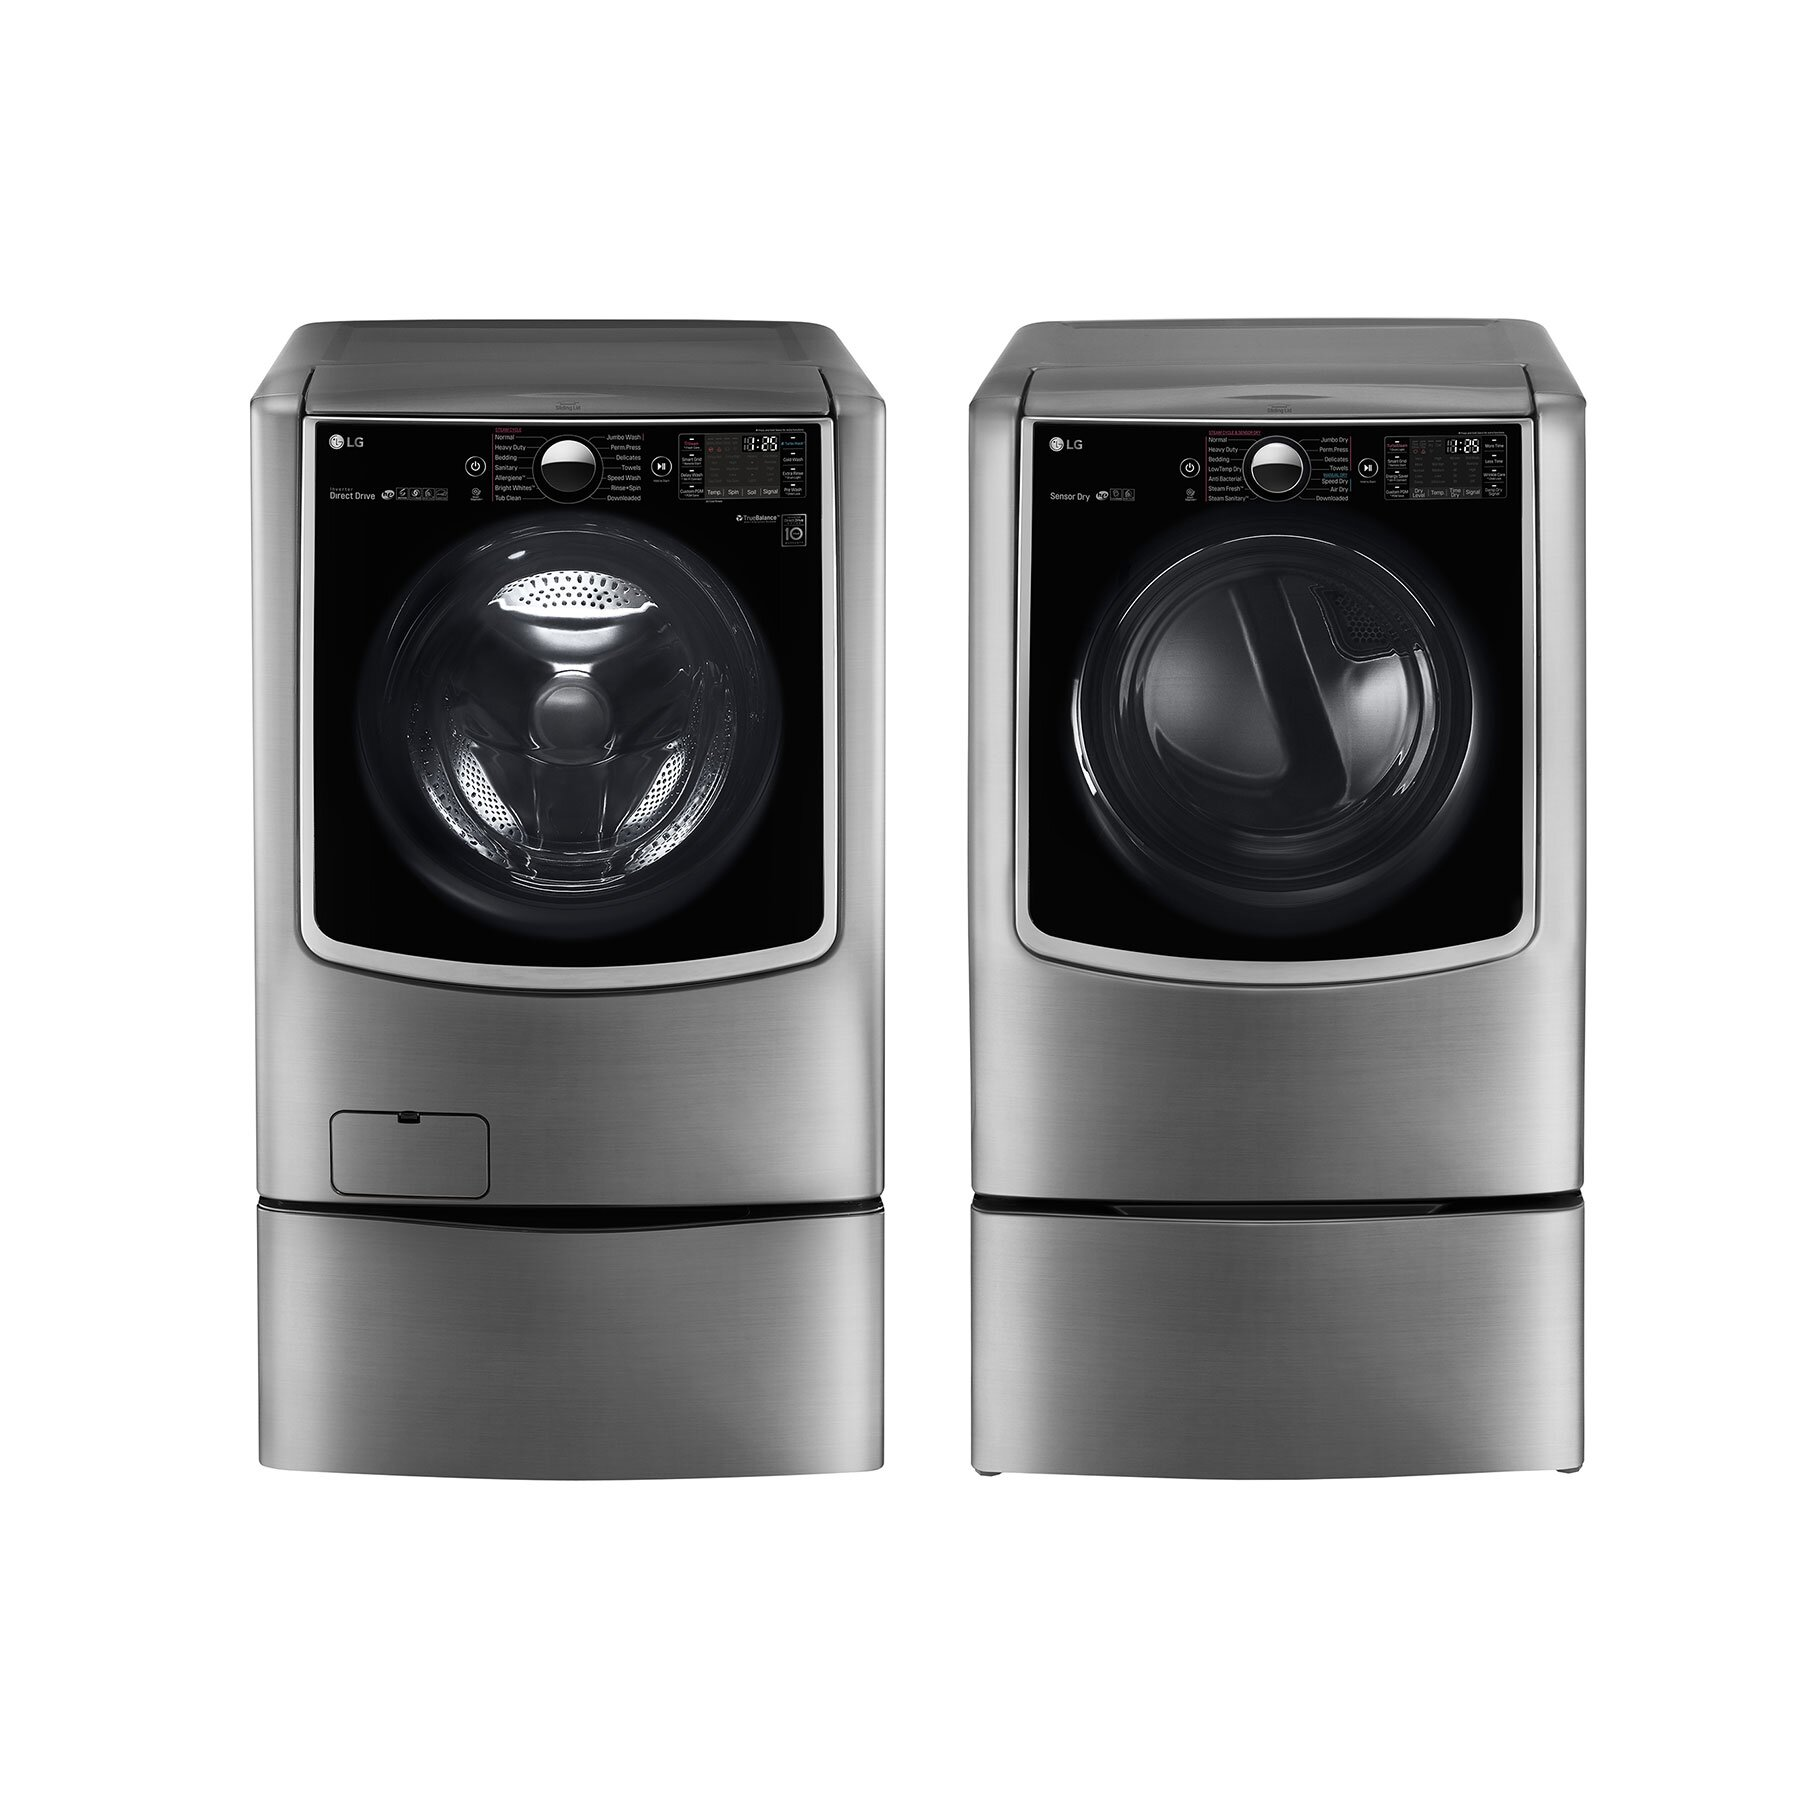 Smart Home Devices: Washer and Dryer